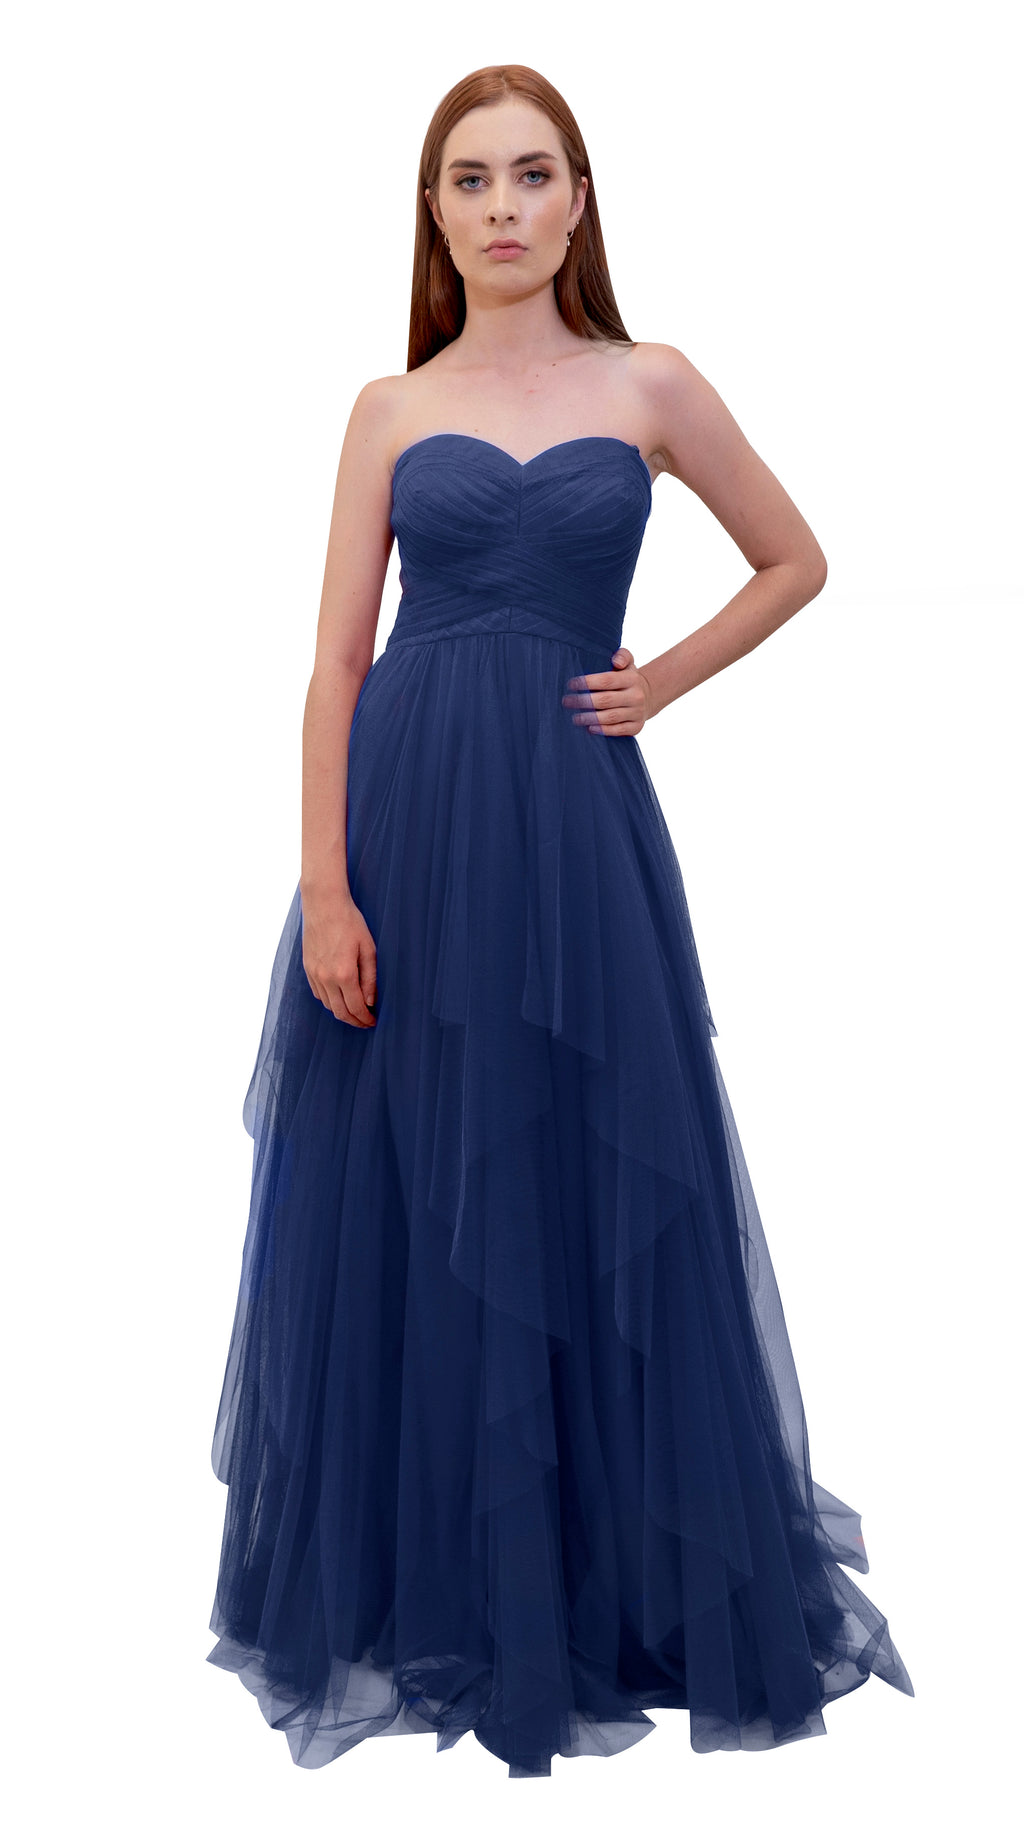 Bariano Petranzia Tulle Ball Gown Navy